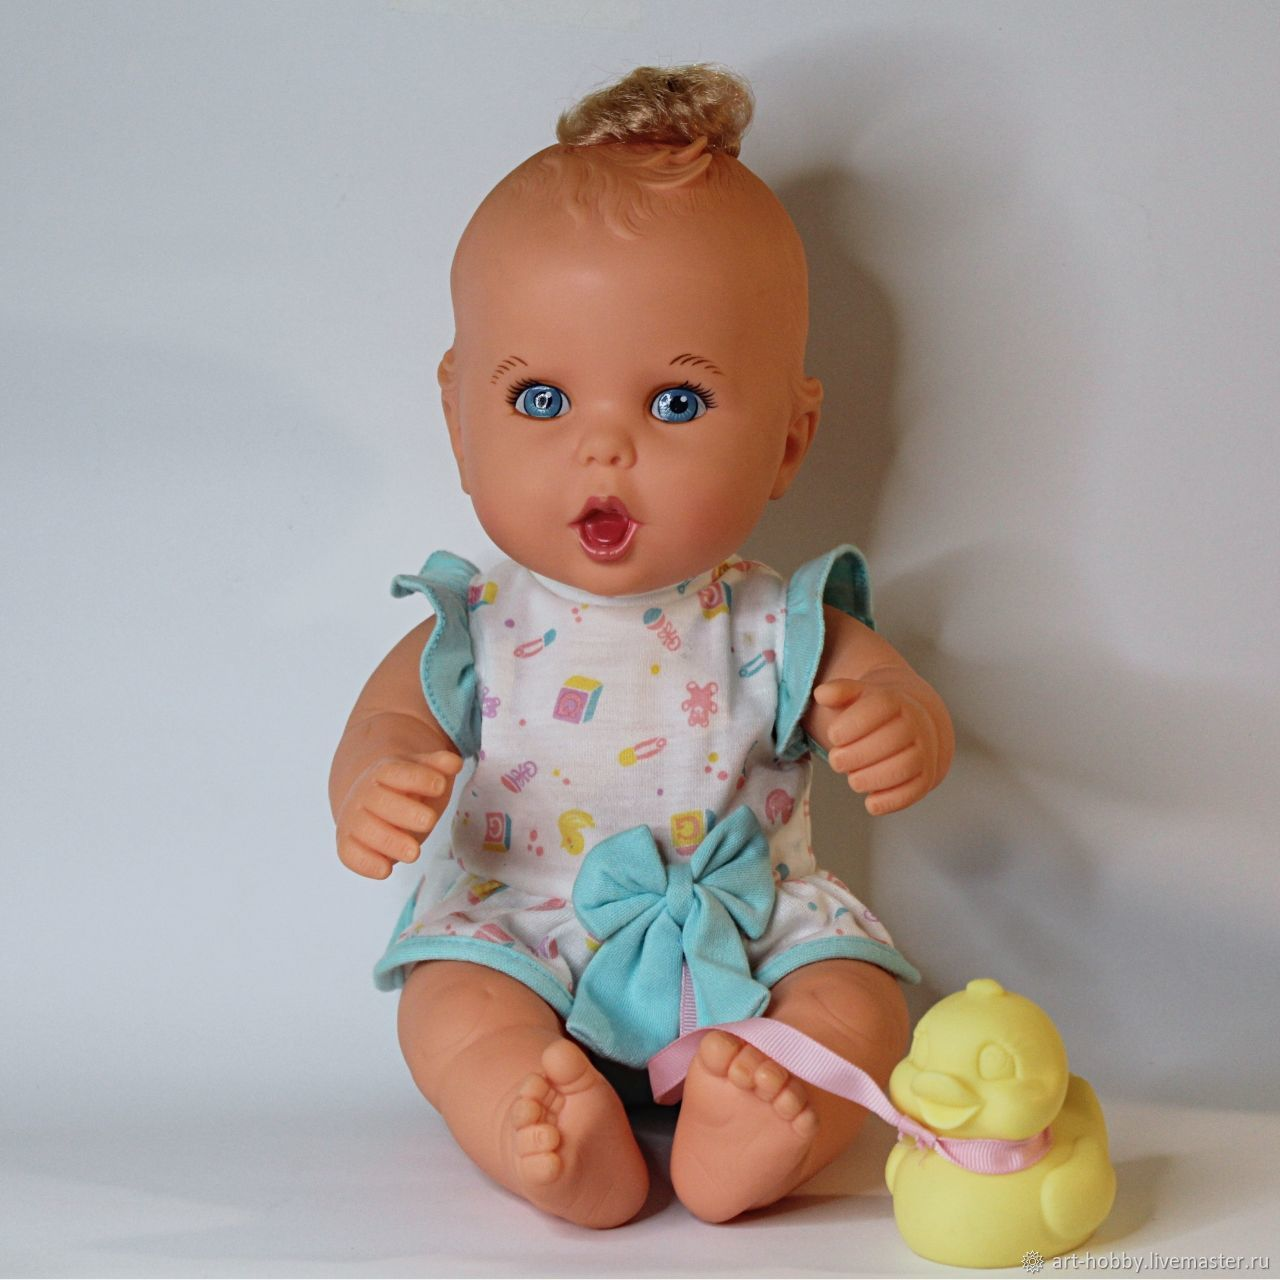 Doll GERBER, Vintage doll, Moscow,  Фото №1